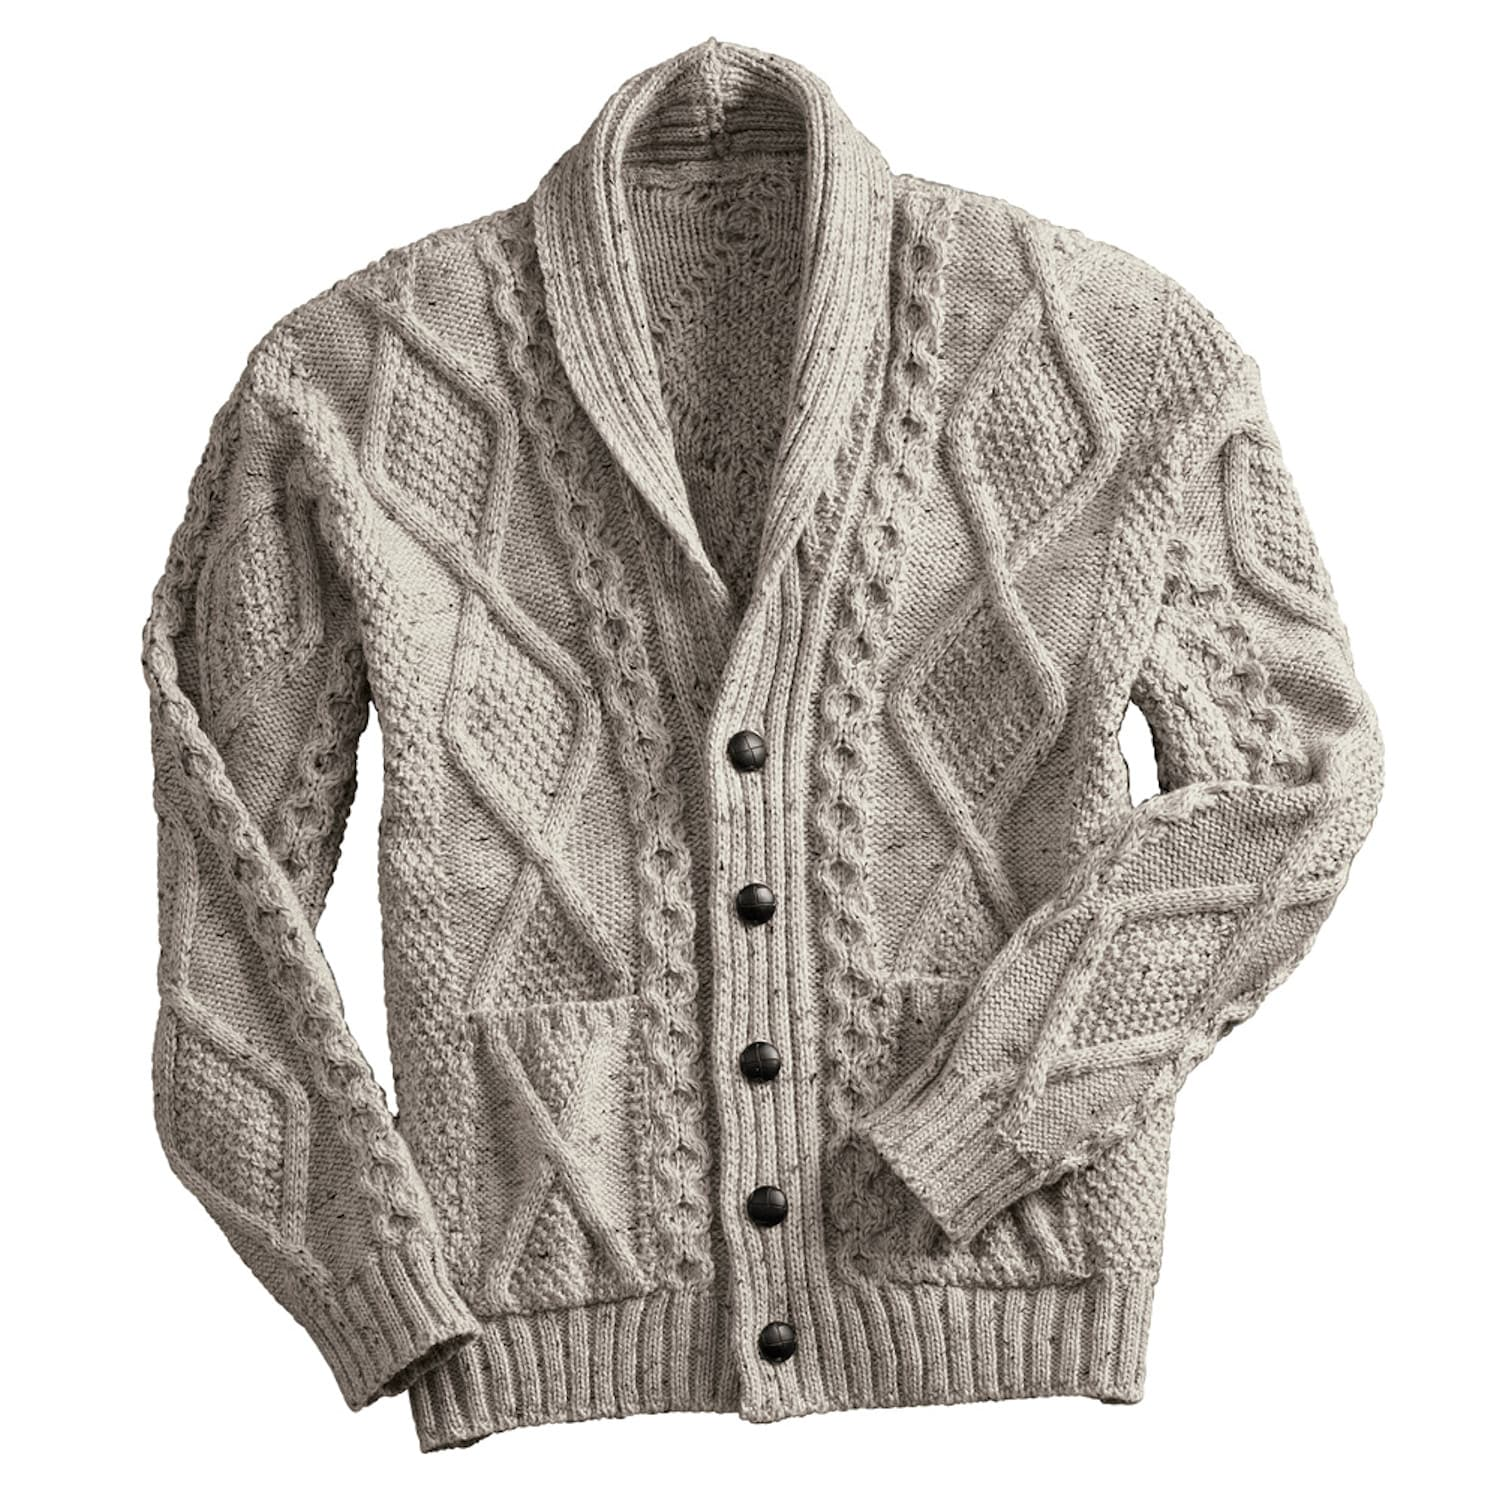 Find a Cable Knit Sweater for Women, a Cable Knit Sweater for Juniors, and a Cable Knit Sweater Outfit at Macy's. Macy's Presents: The Edit- A curated mix of fashion and inspiration Check It Out. Polo Ralph Lauren Men's Cable-Knit Cardigan Sweater.